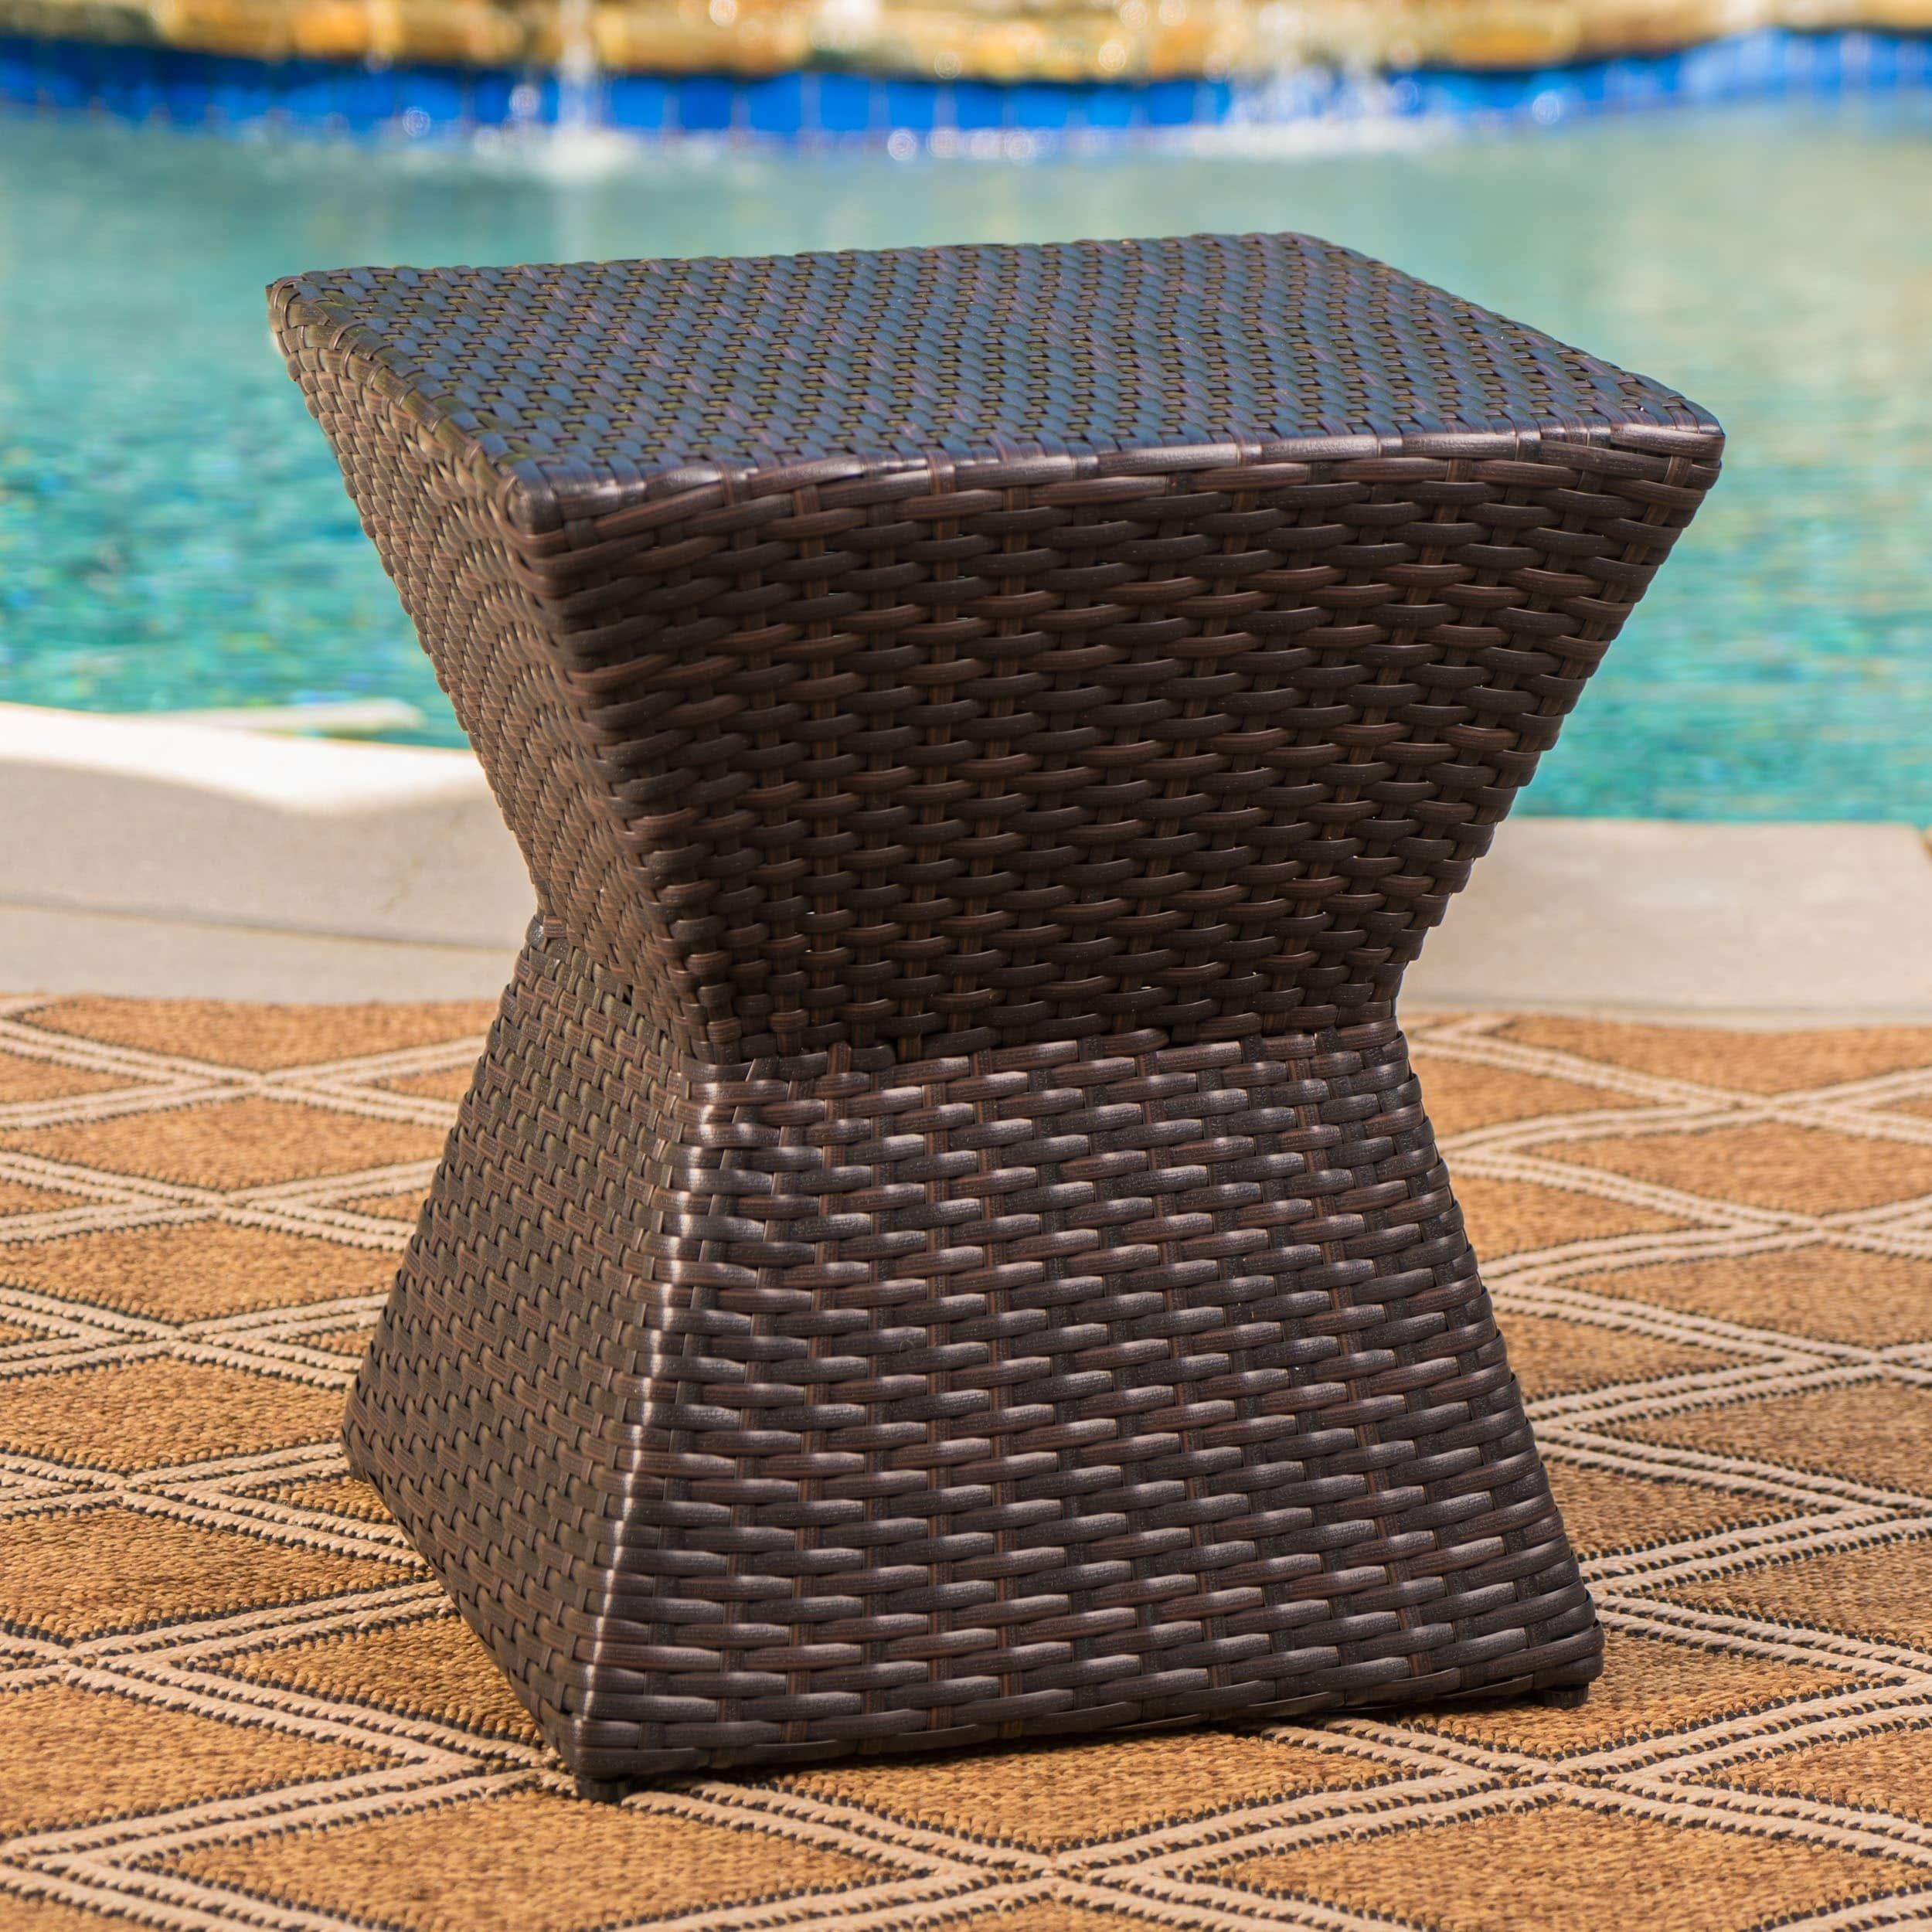 calhoun outdoor square wicker side table christopher knight home brown free shipping today office dining and chairs kade accent dale tiffany dragonfly lily lamp stained glass